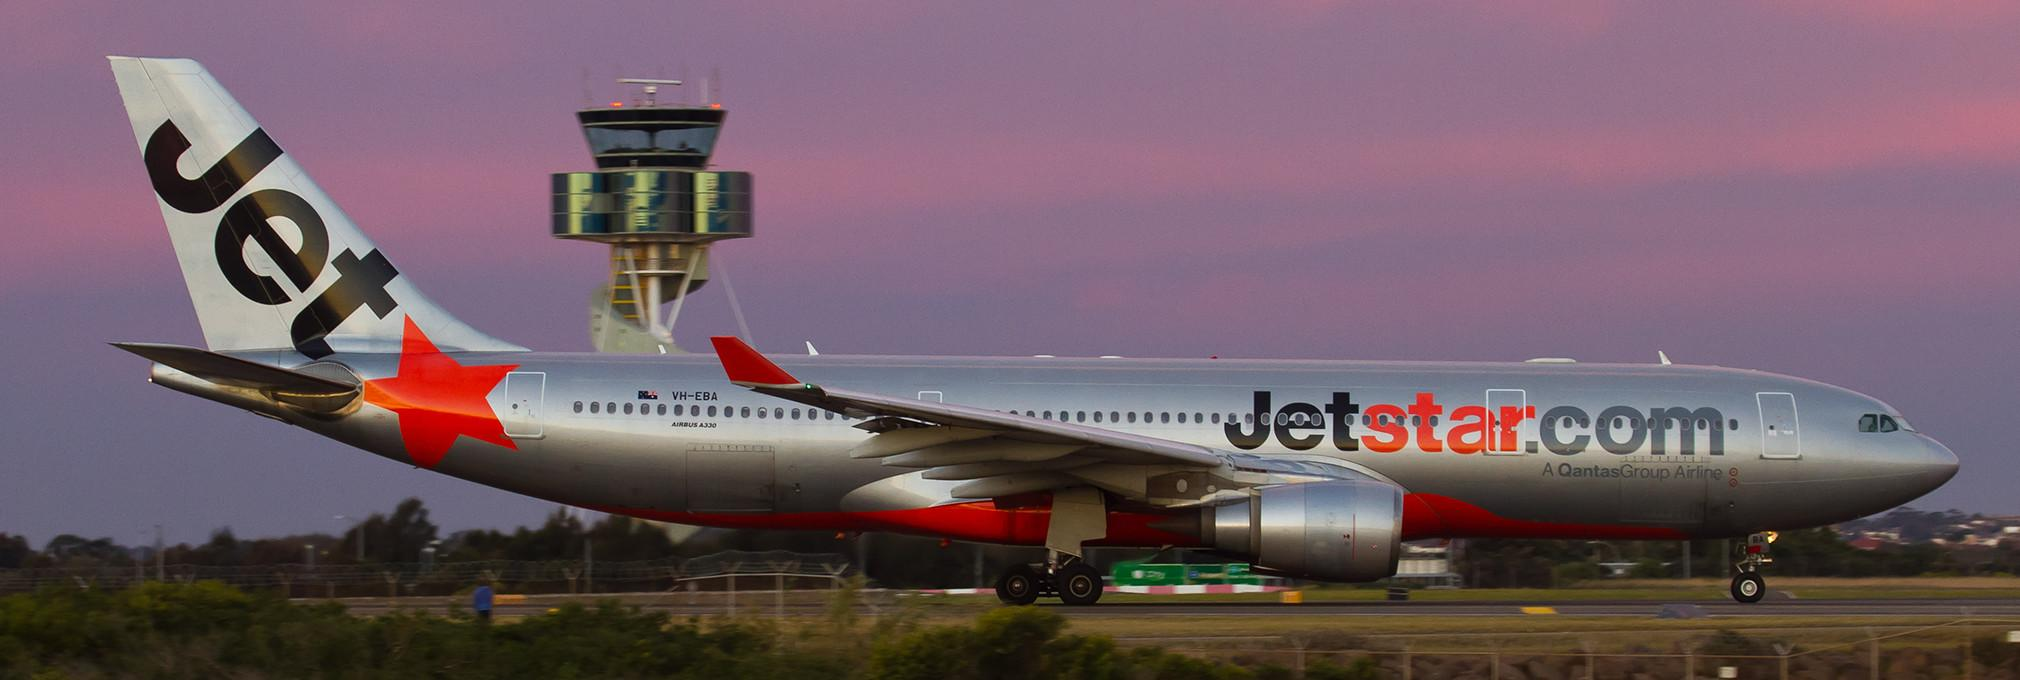 jetstar flights - photo #1